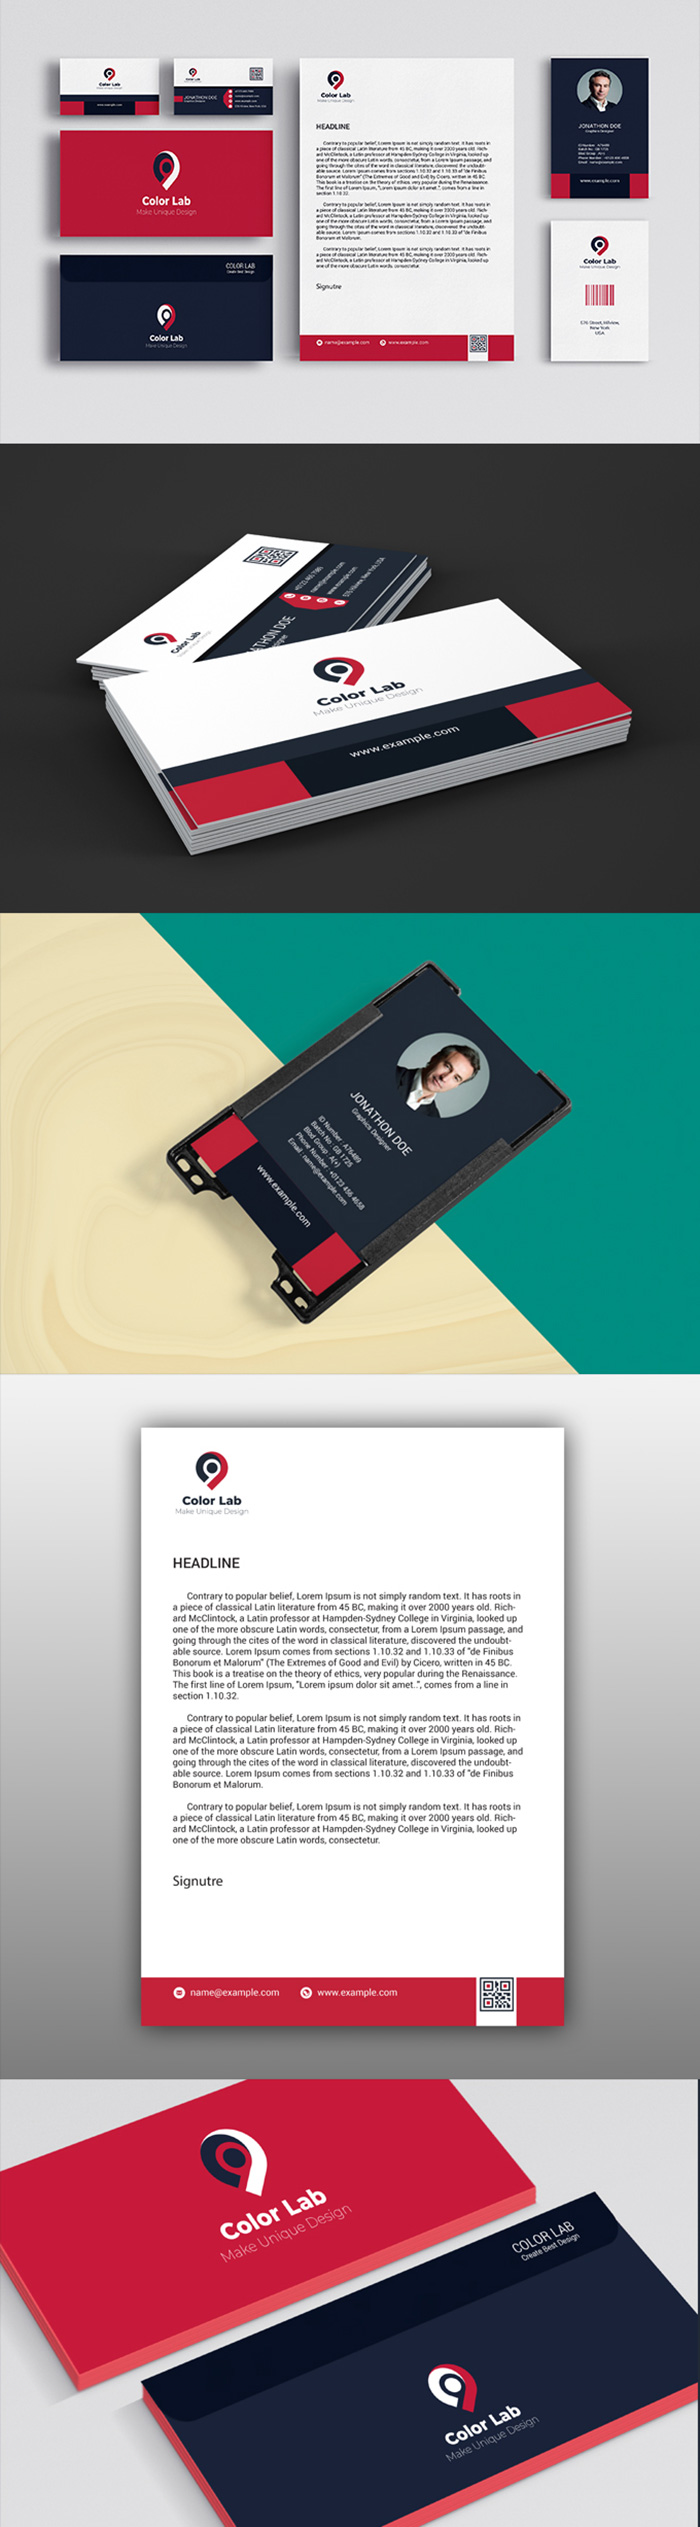 50 Corporate Identities with Extended License - 5